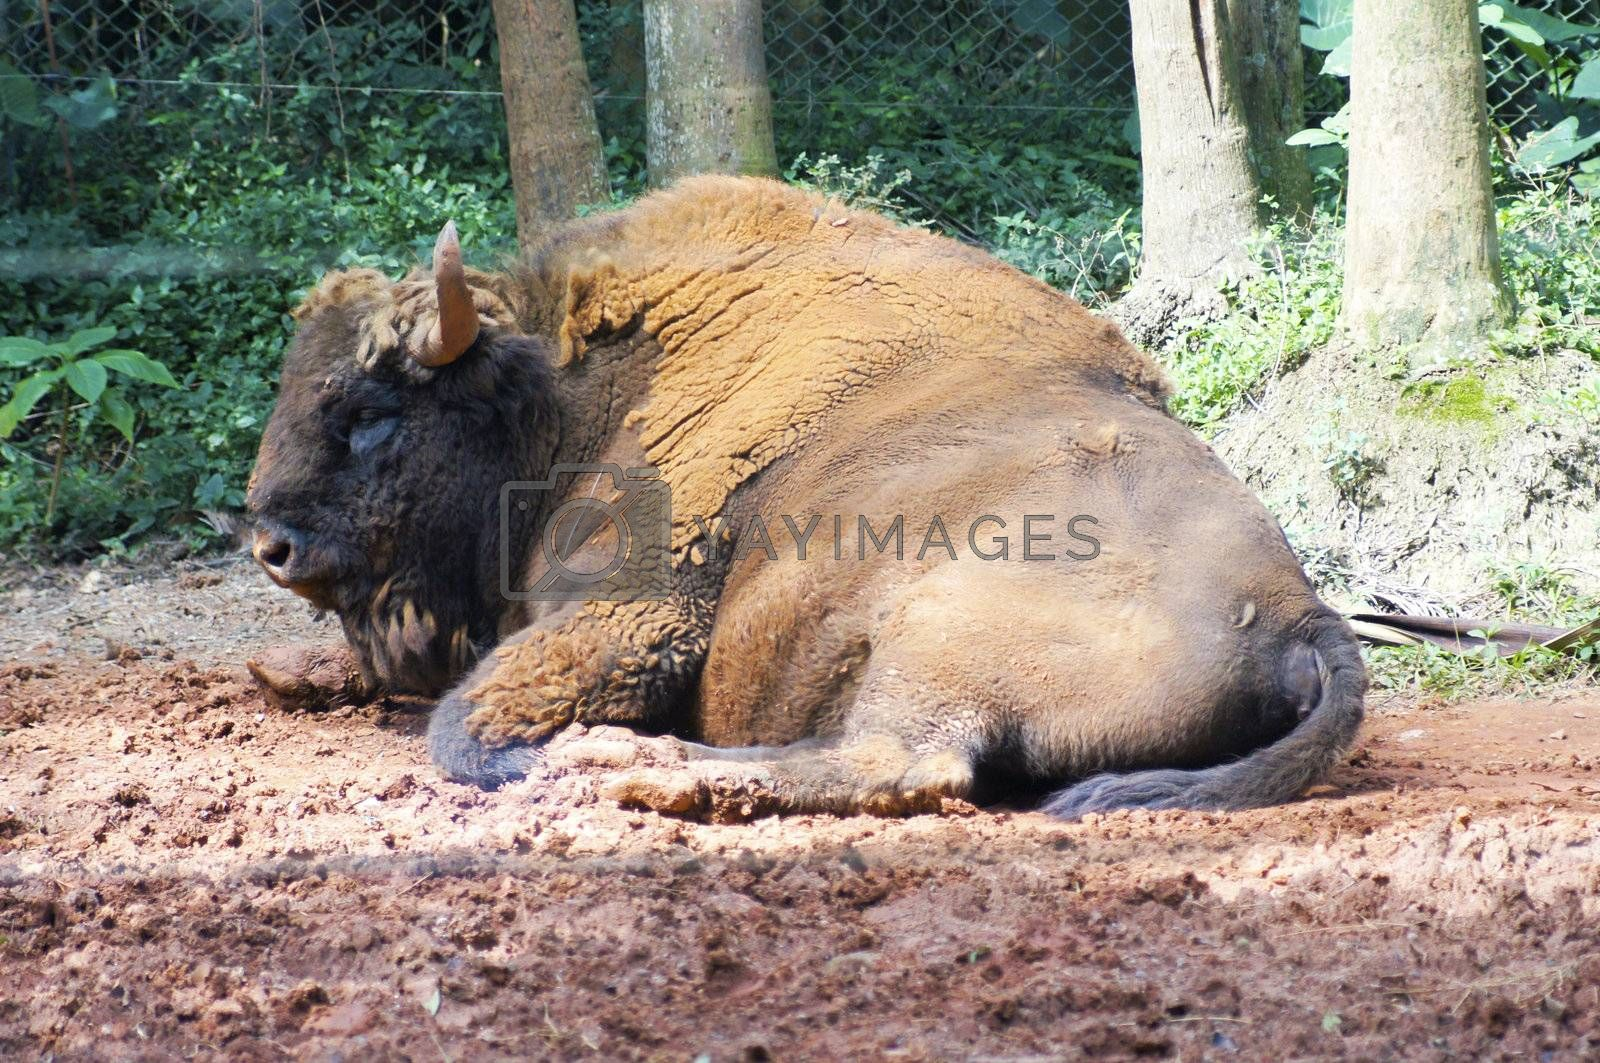 The African bison has never been domesticated and remain wild in national parks and regions of the African savannah.